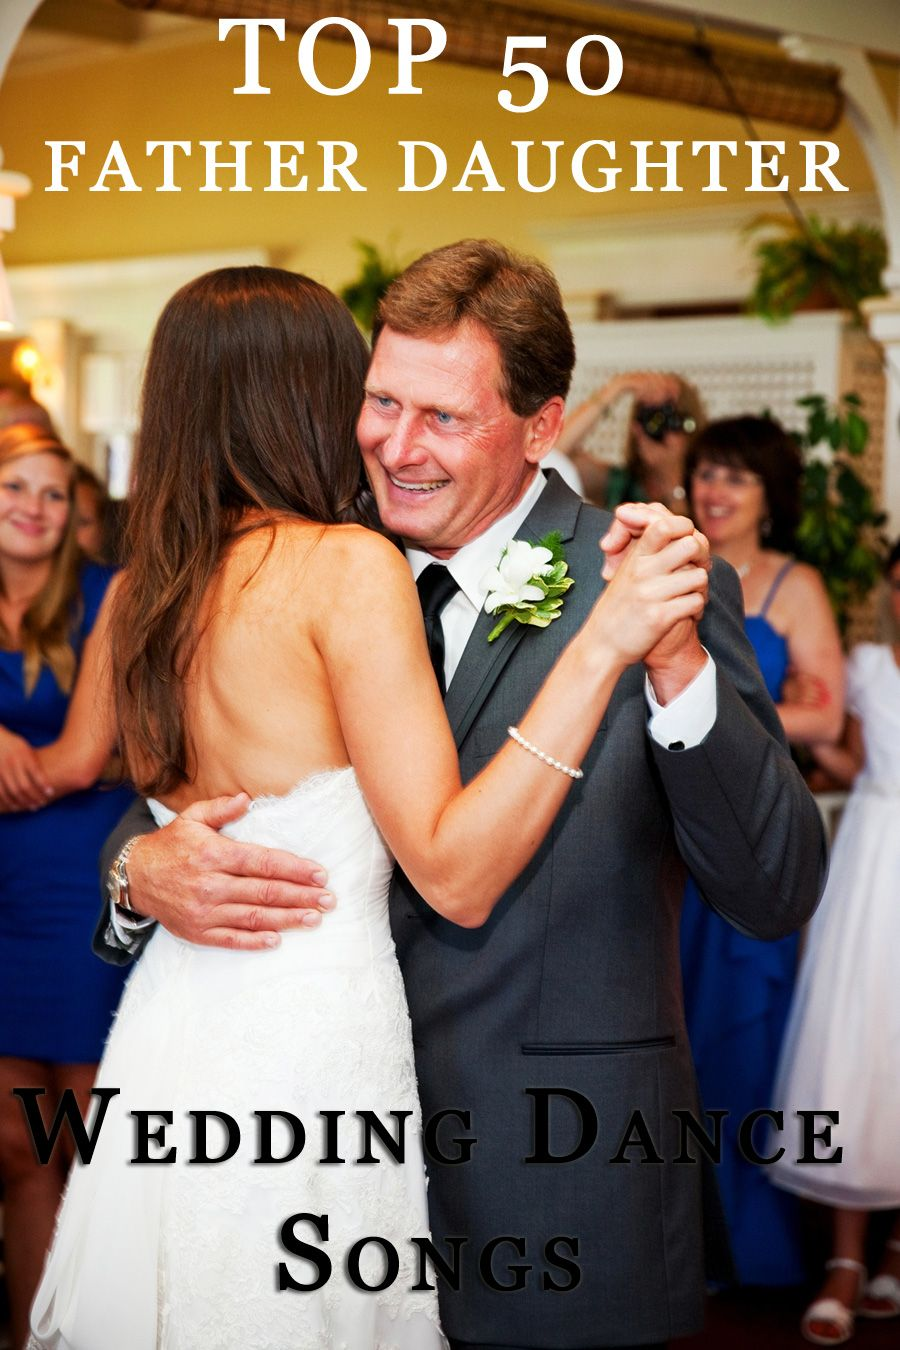 Top 50 Father Daughter Wedding Dance Songs, some great ideas here ...